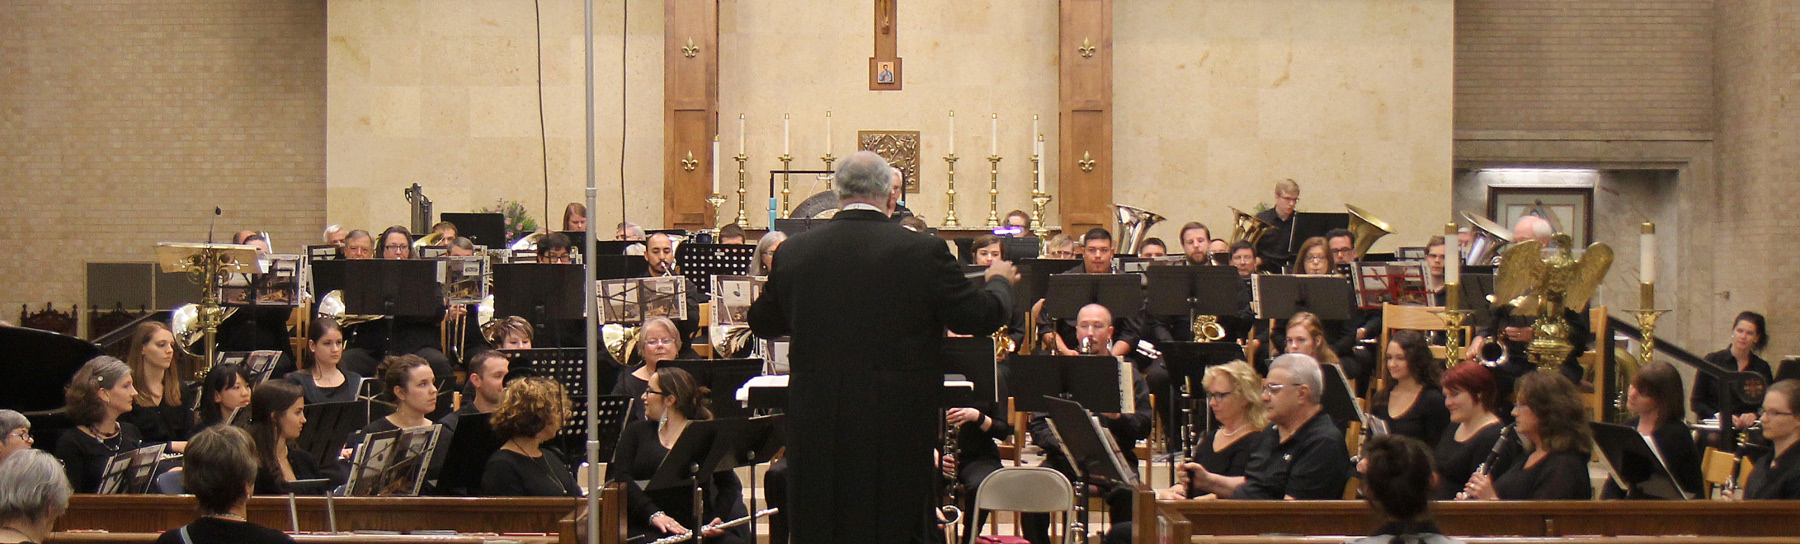 Concert at St. Louis Catholic Church